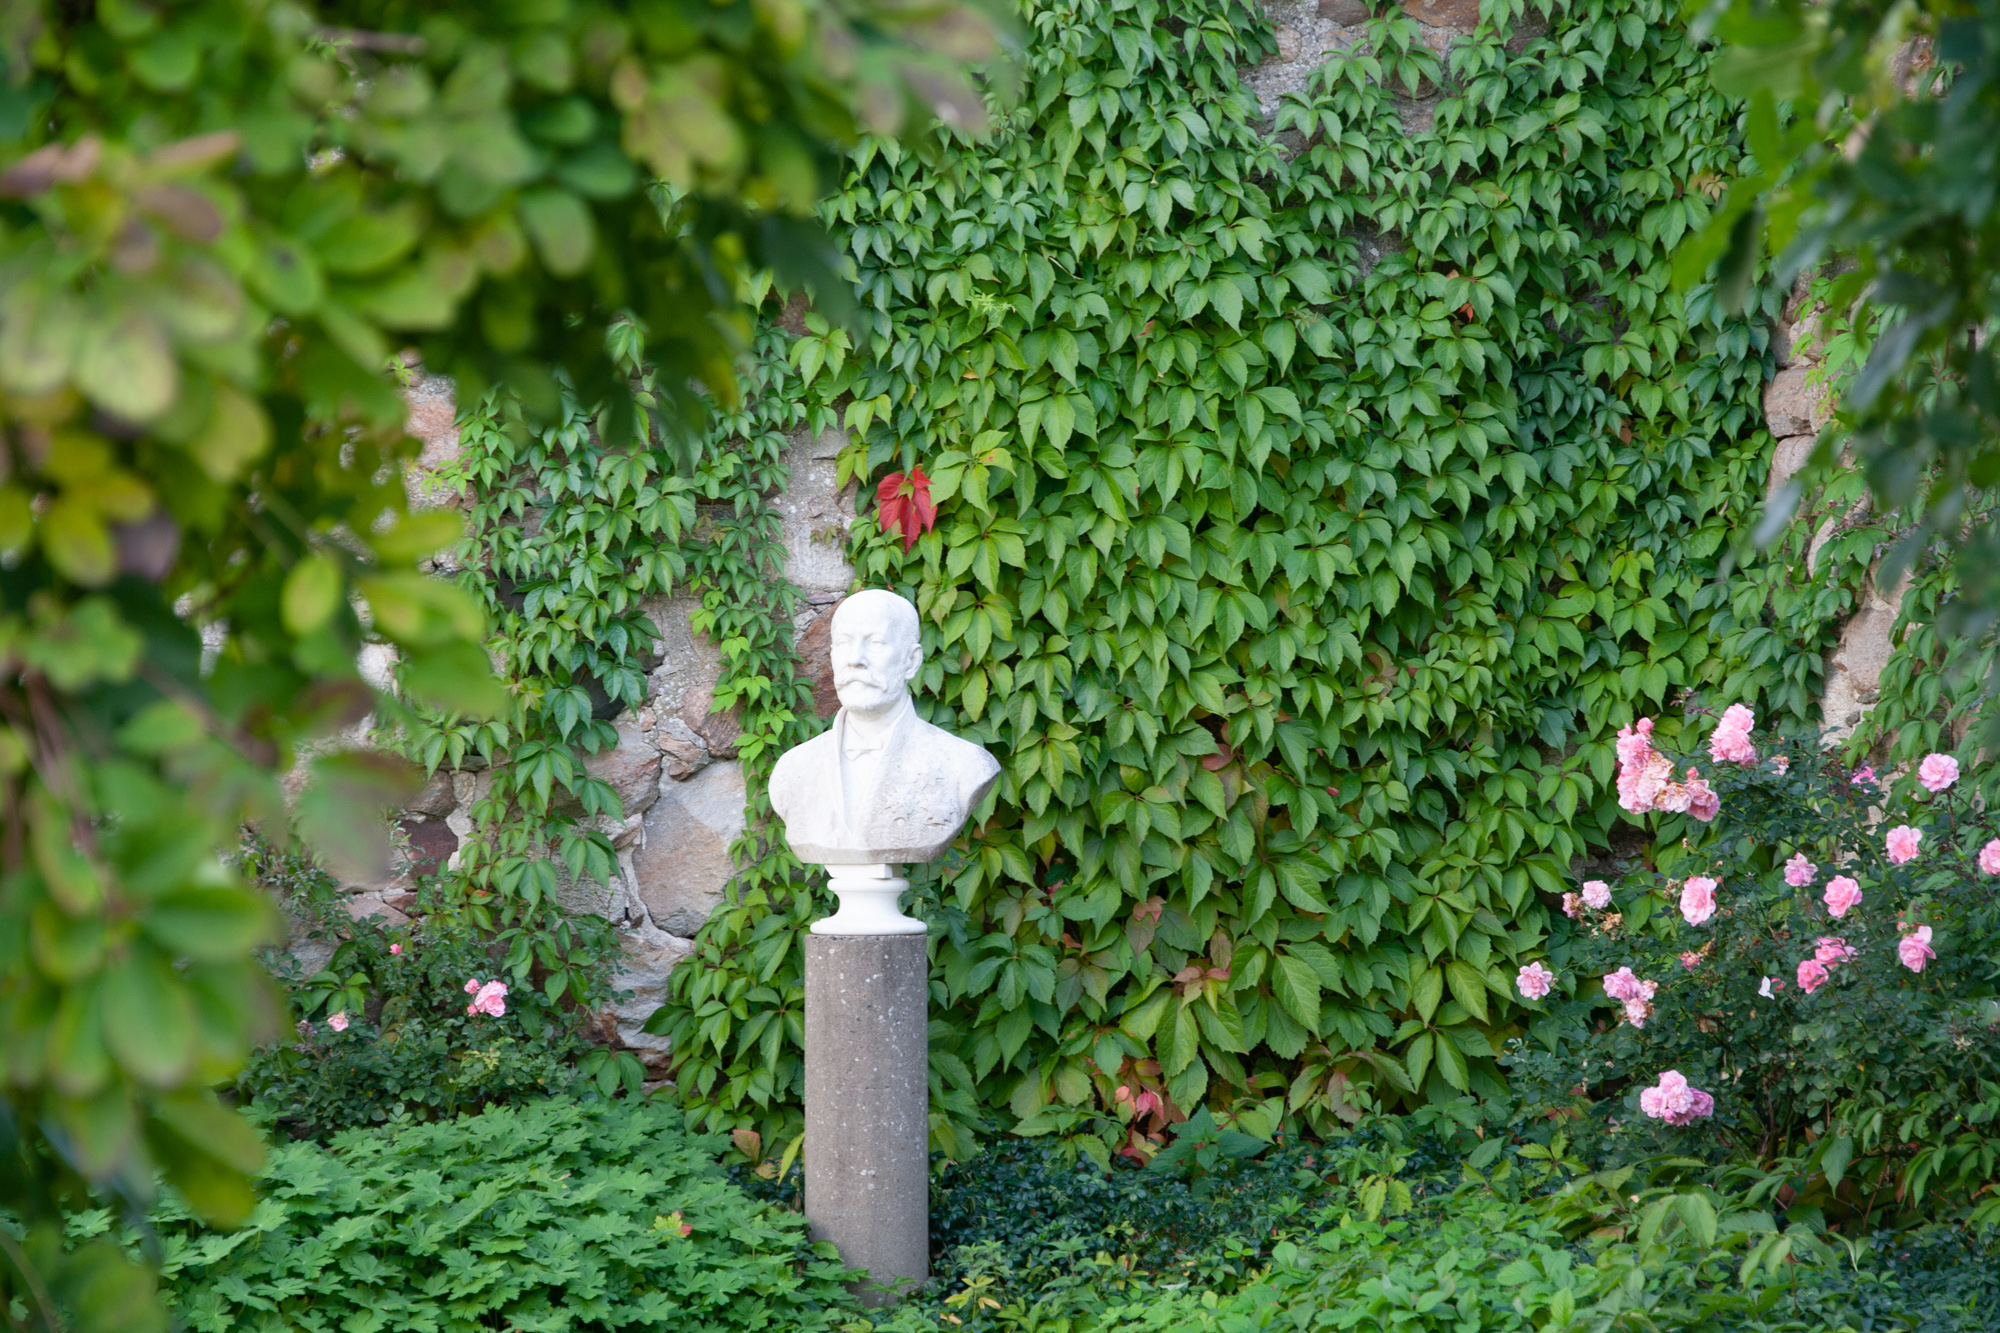 In the Memorial Yard, you will find the Rose Stenchen, now renamed 'Bosjökloster'. It has bloomed here since 1908.